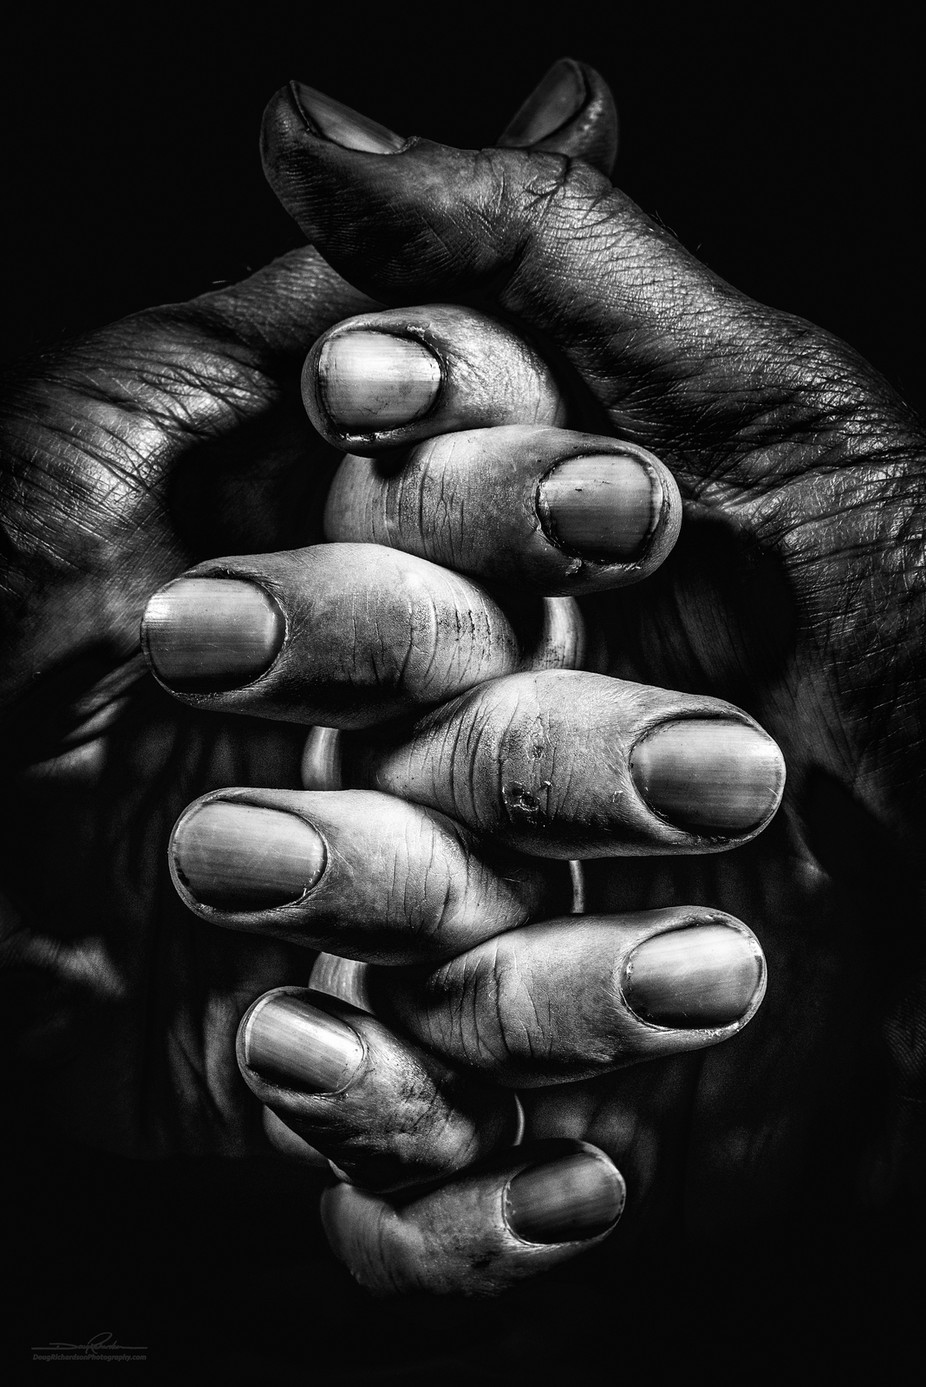 Working Hands by douglasrichardson - Shooting Hands Photo Contest